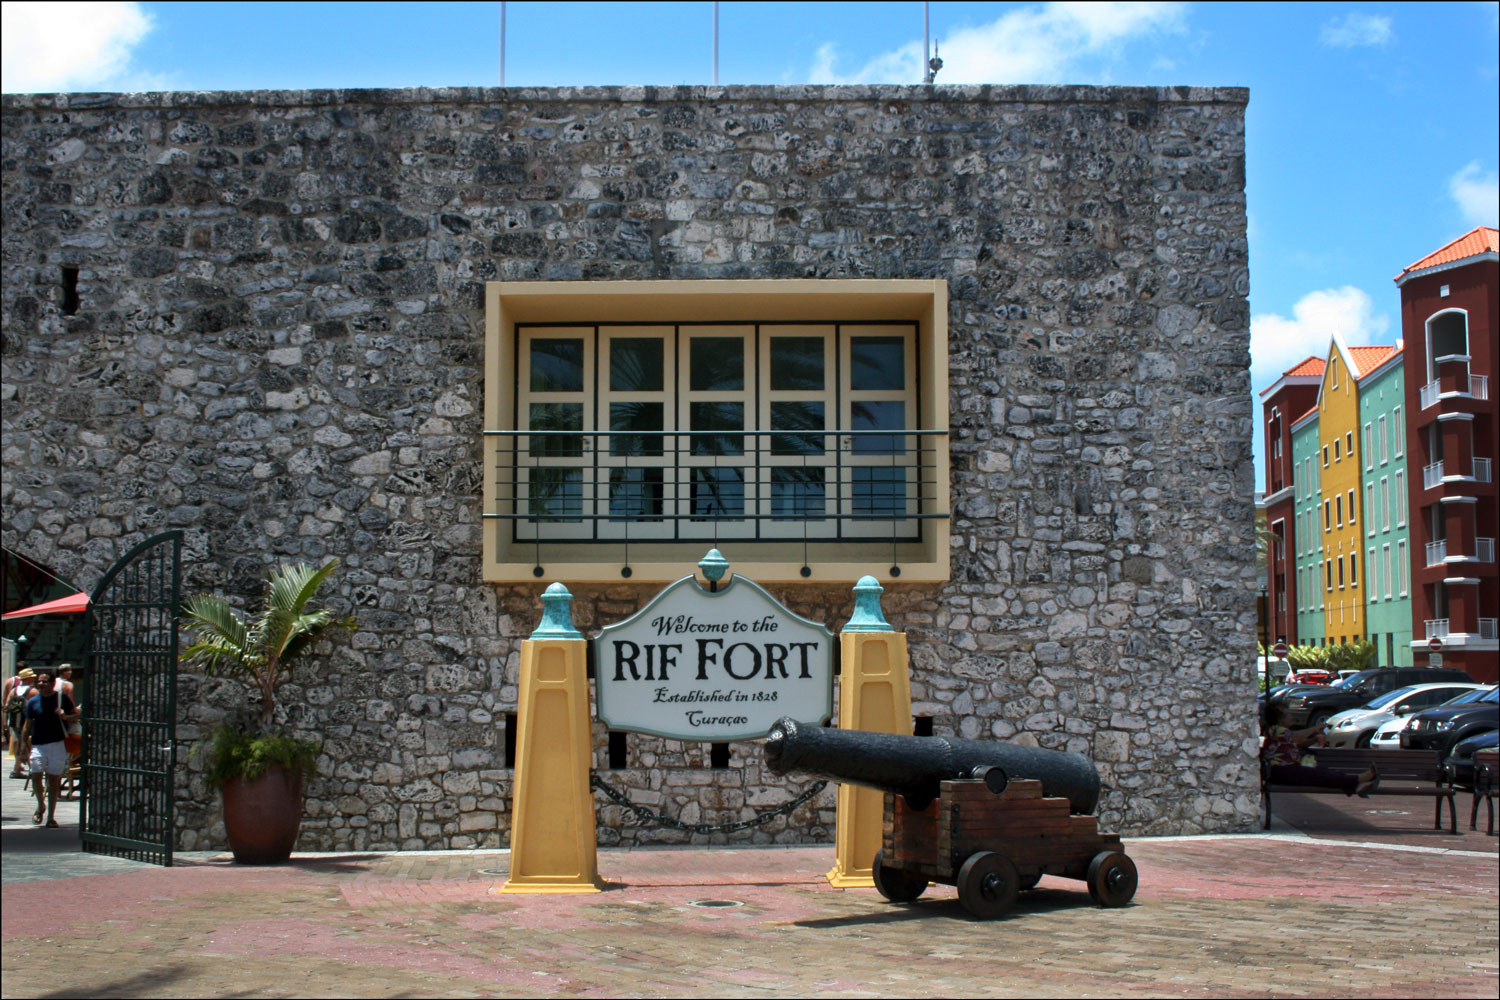 The Rif Fort